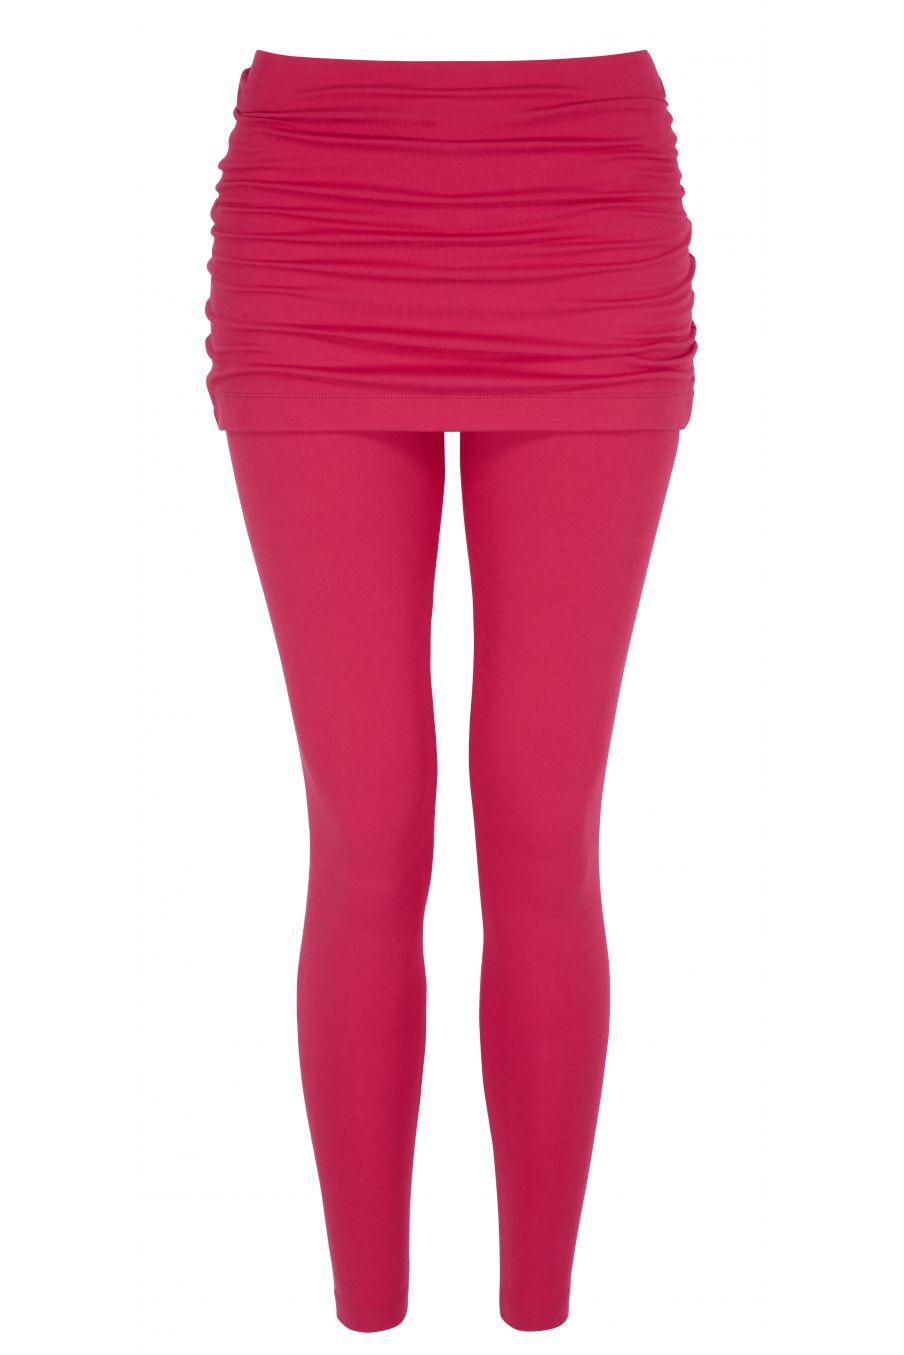 Smooth You Leggings, maternity wear for yoga